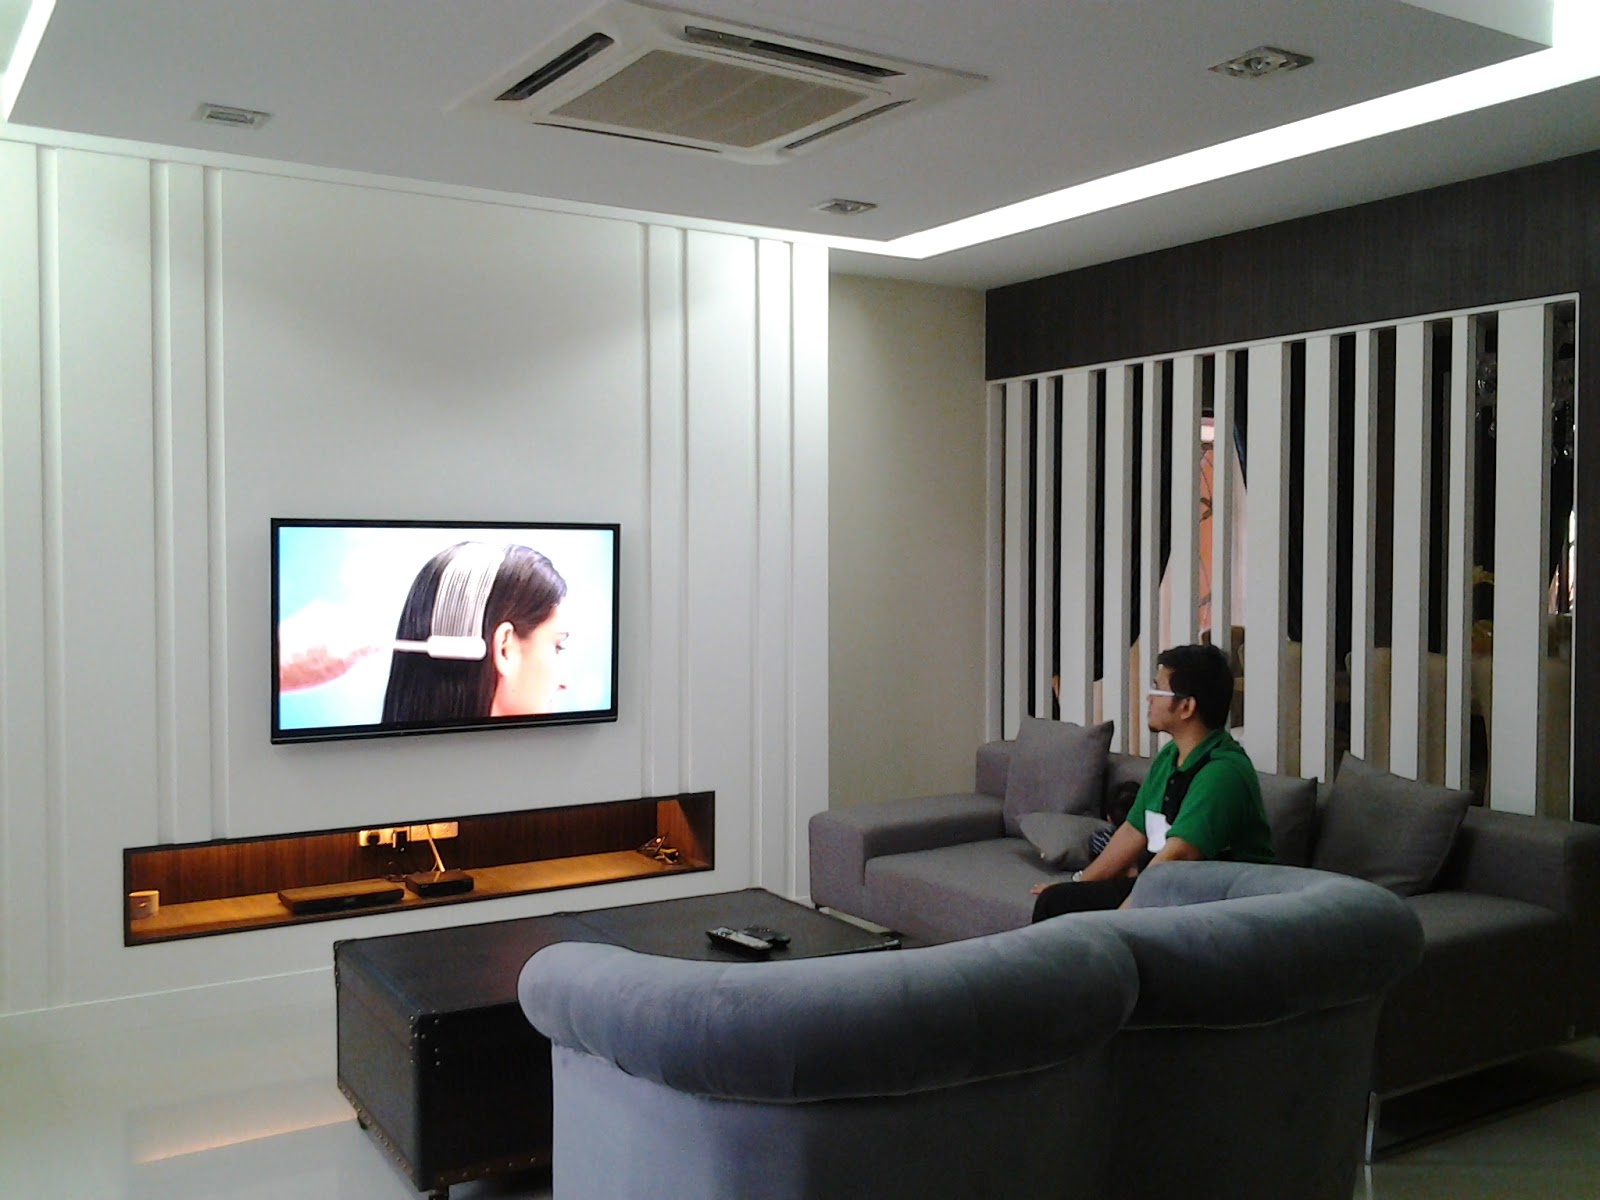 Airaniez S Life Tips Rekaan Kabinet Tv Tv Cabinet Design Tips